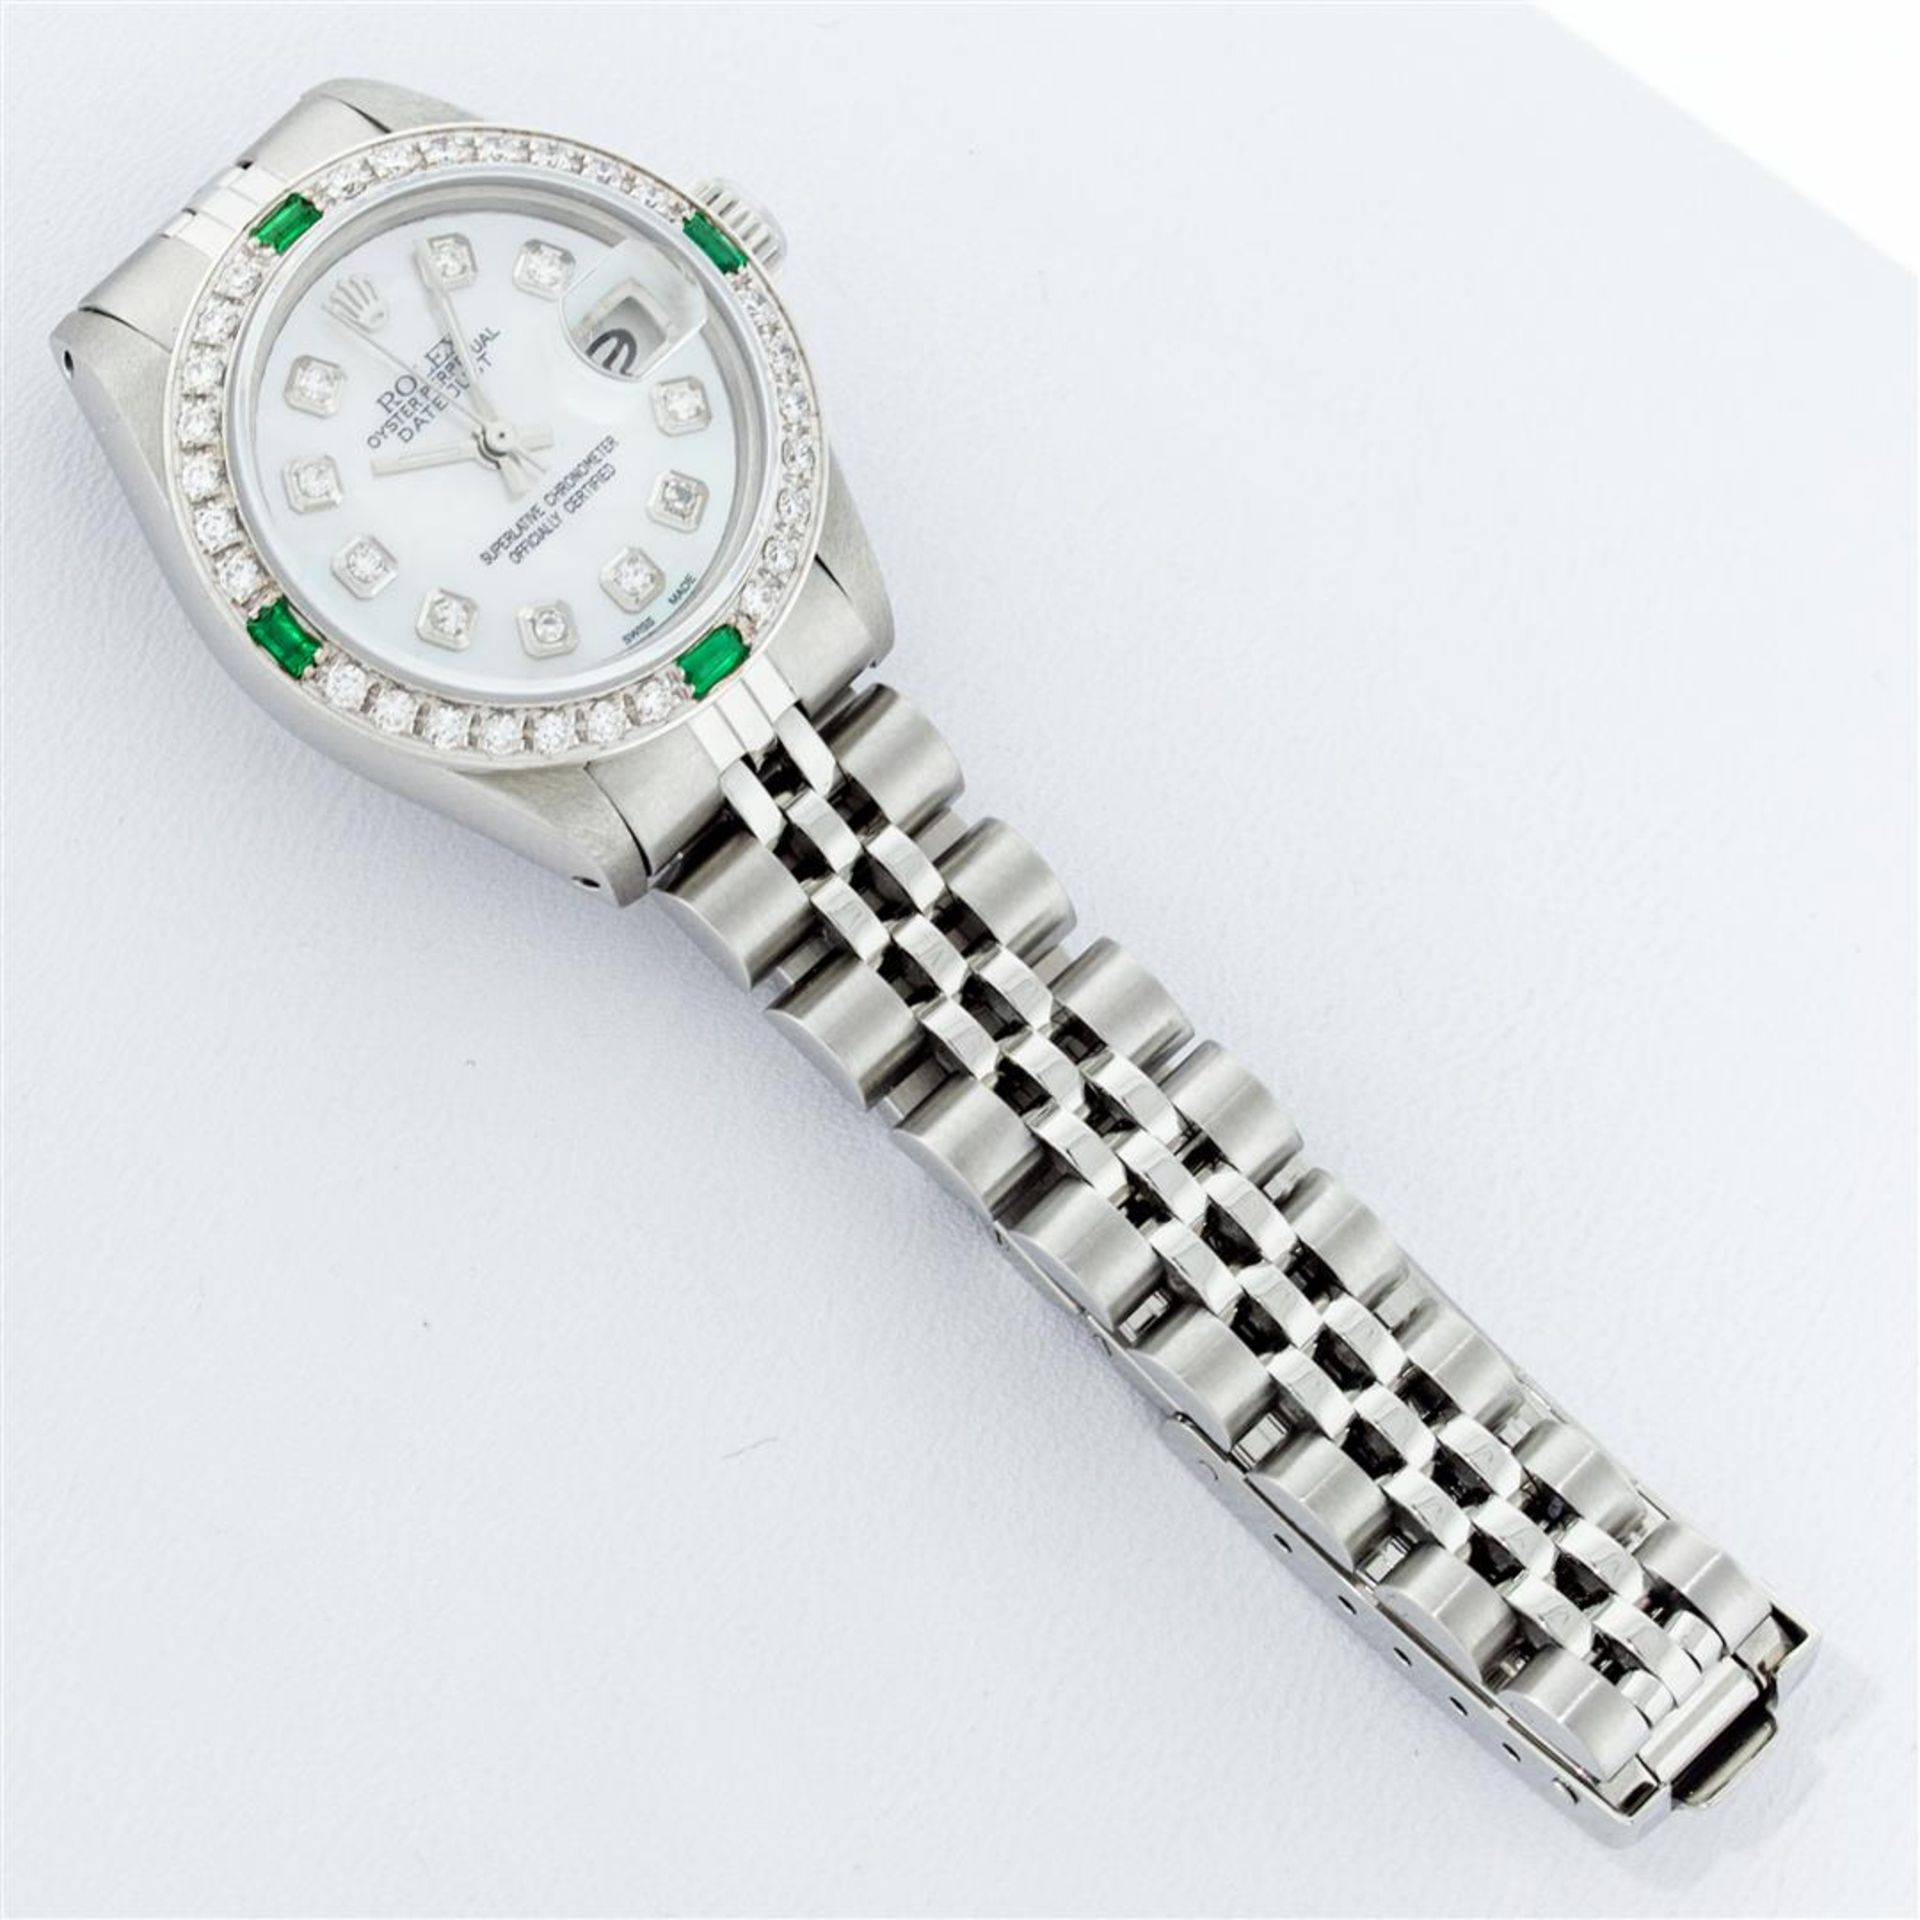 Rolex Ladies Stainless Steel Mother Of Pearl Diamond 26MM Datejust Wristwatch - Image 5 of 9